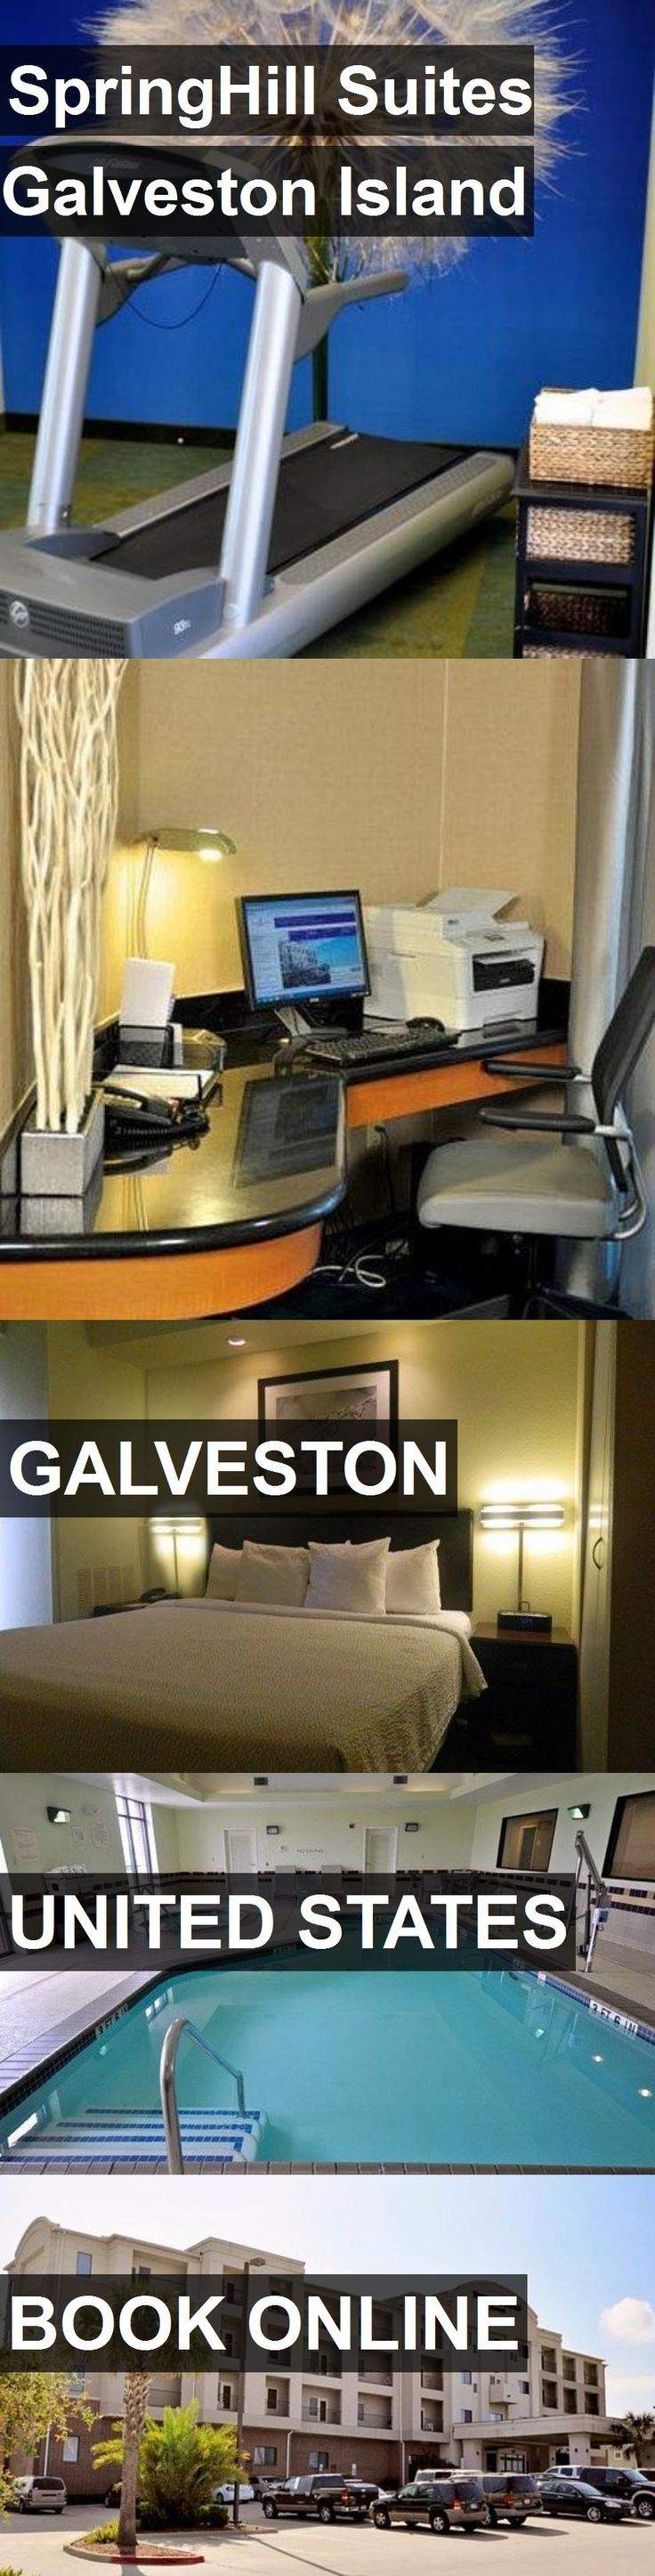 Hotel SpringHill Suites Galveston Island in Galveston, United States. For more information, photos, reviews and best prices please follow the link. #UnitedStates #Galveston #travel #vacation #hotel